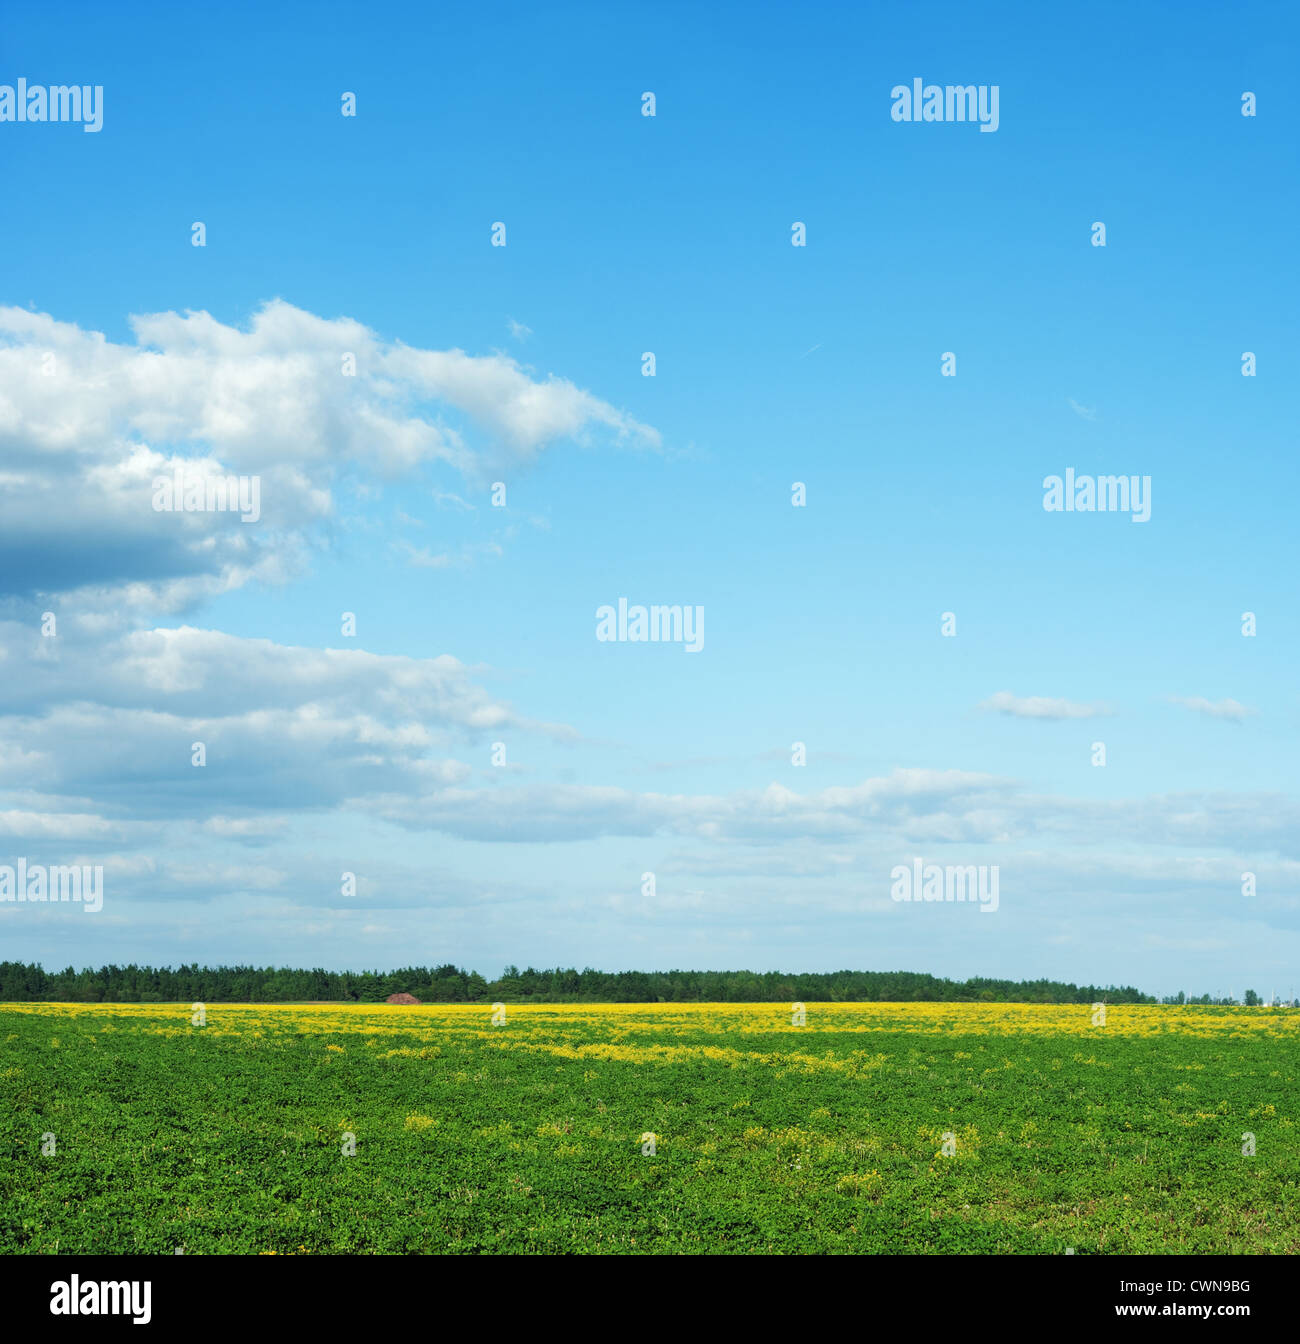 Green field. - Stock Image